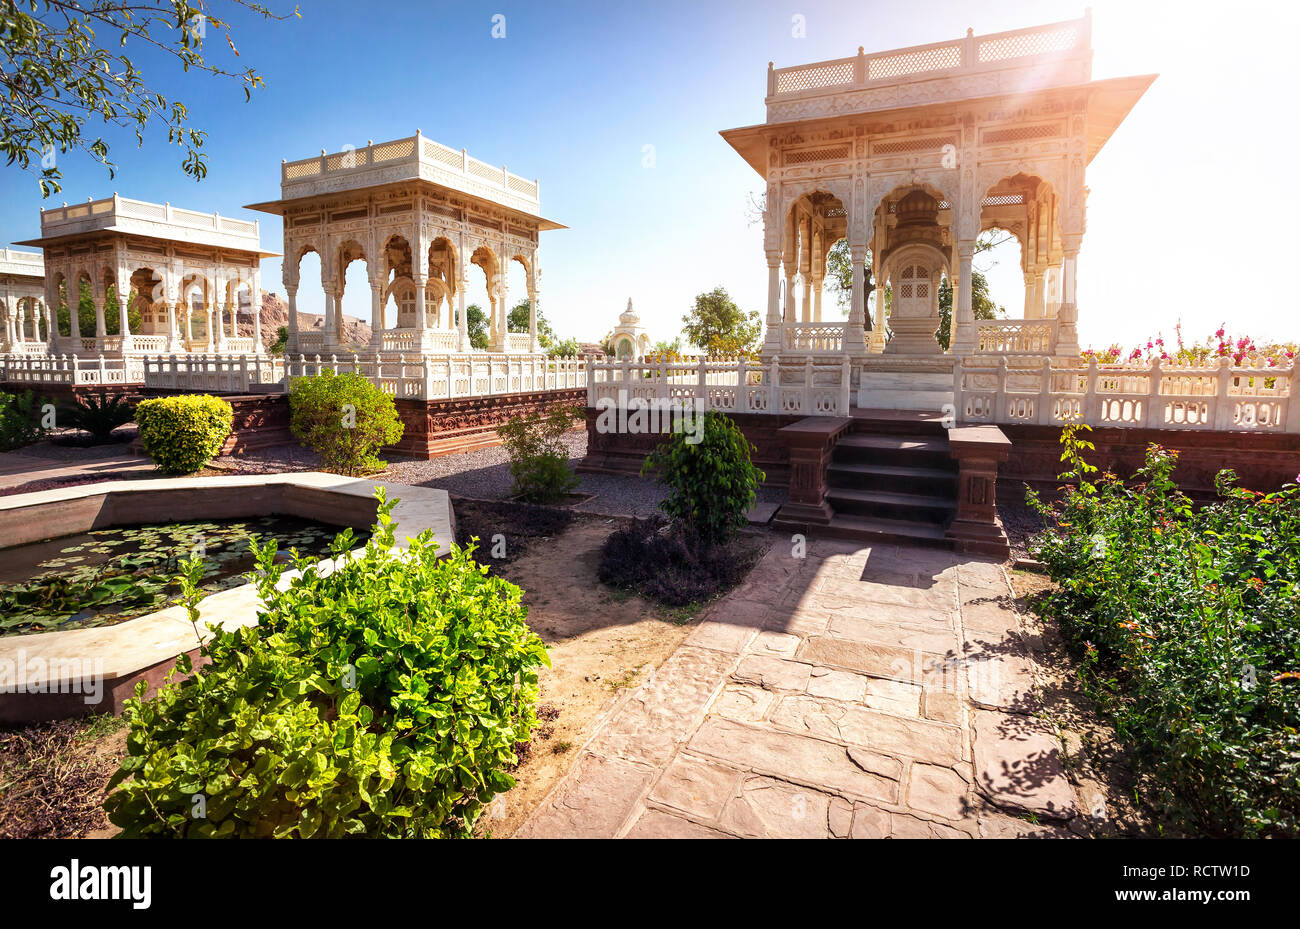 White marble cenotaph in memorial Jaswant at blue city in sunny day in Jodhpur, Rajasthan, India - Stock Image